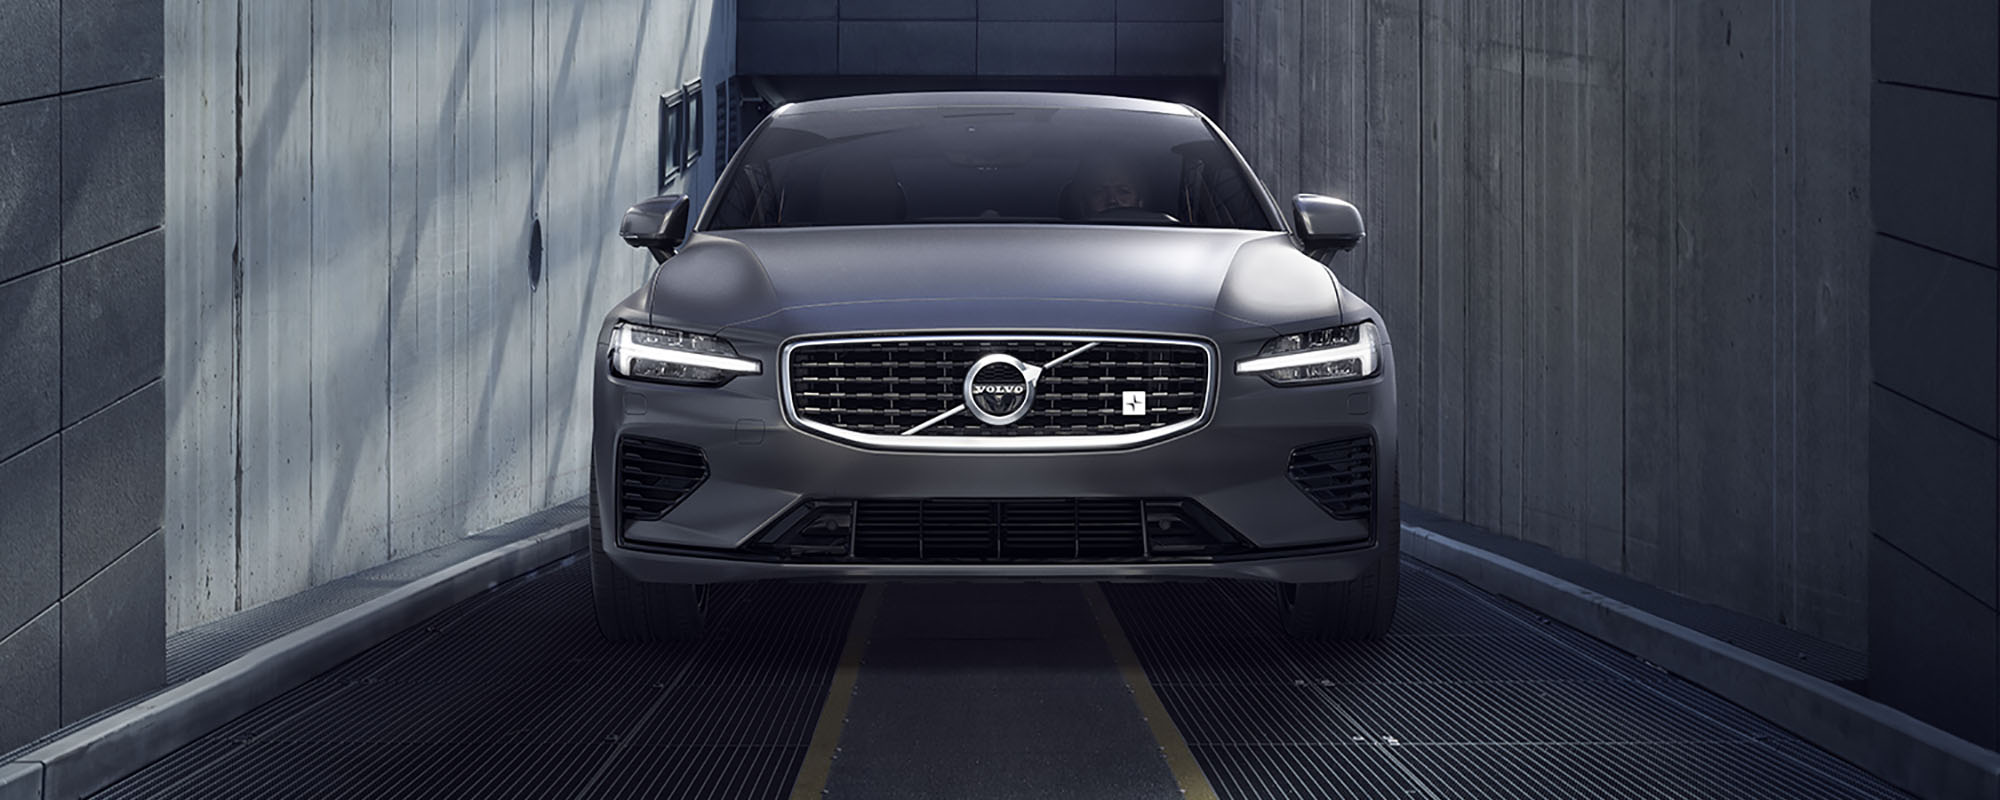 s60 Trims Polestar Exterior Feature1 1 1